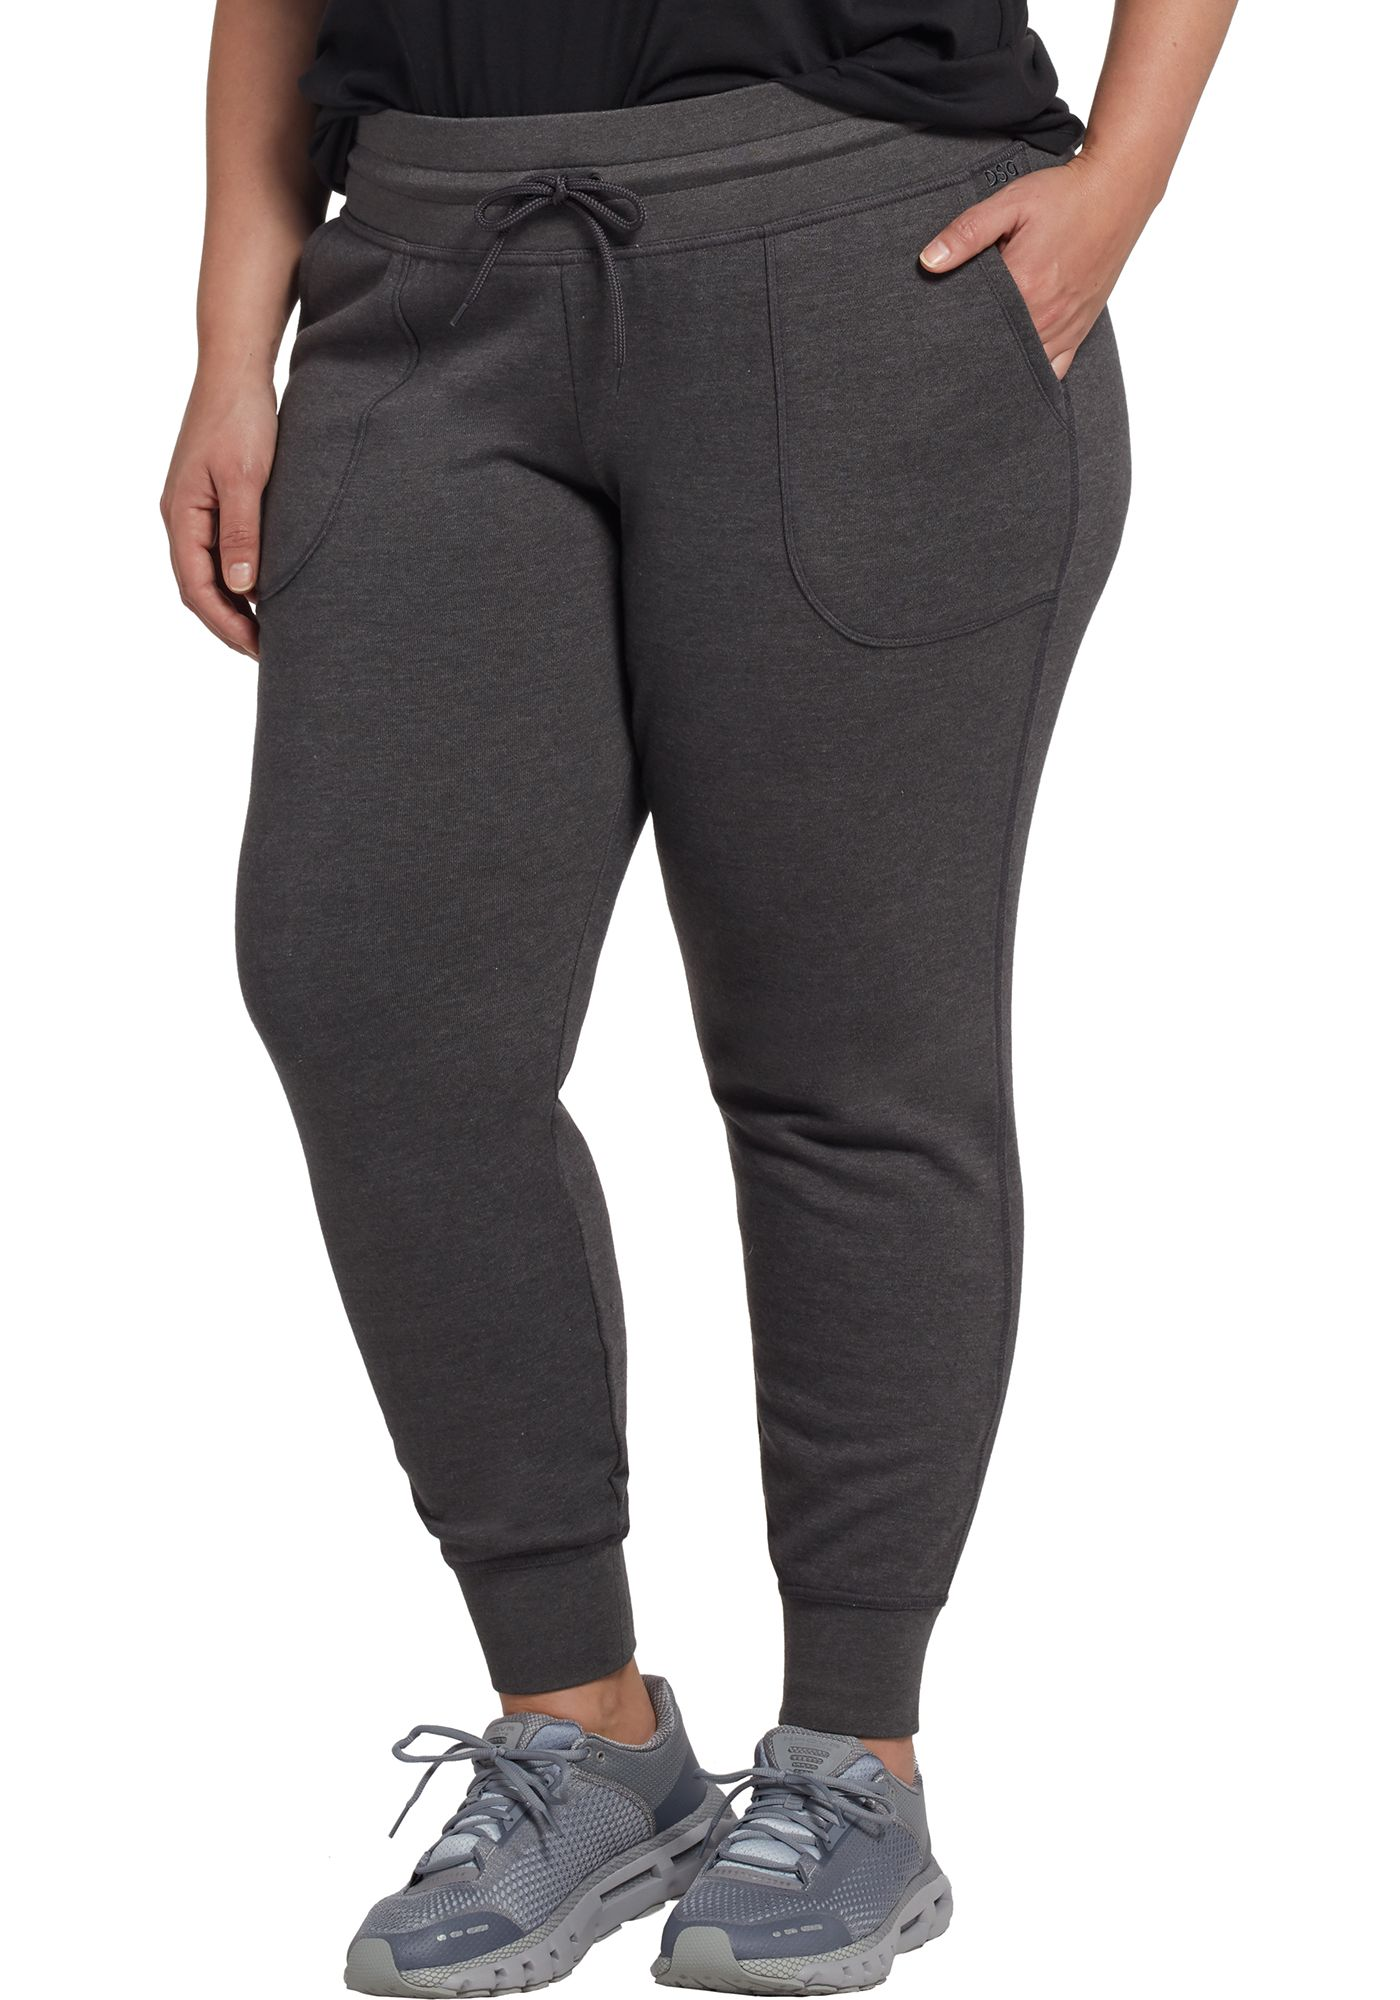 DSG Women's Plus Size Fleece Jogger Pants